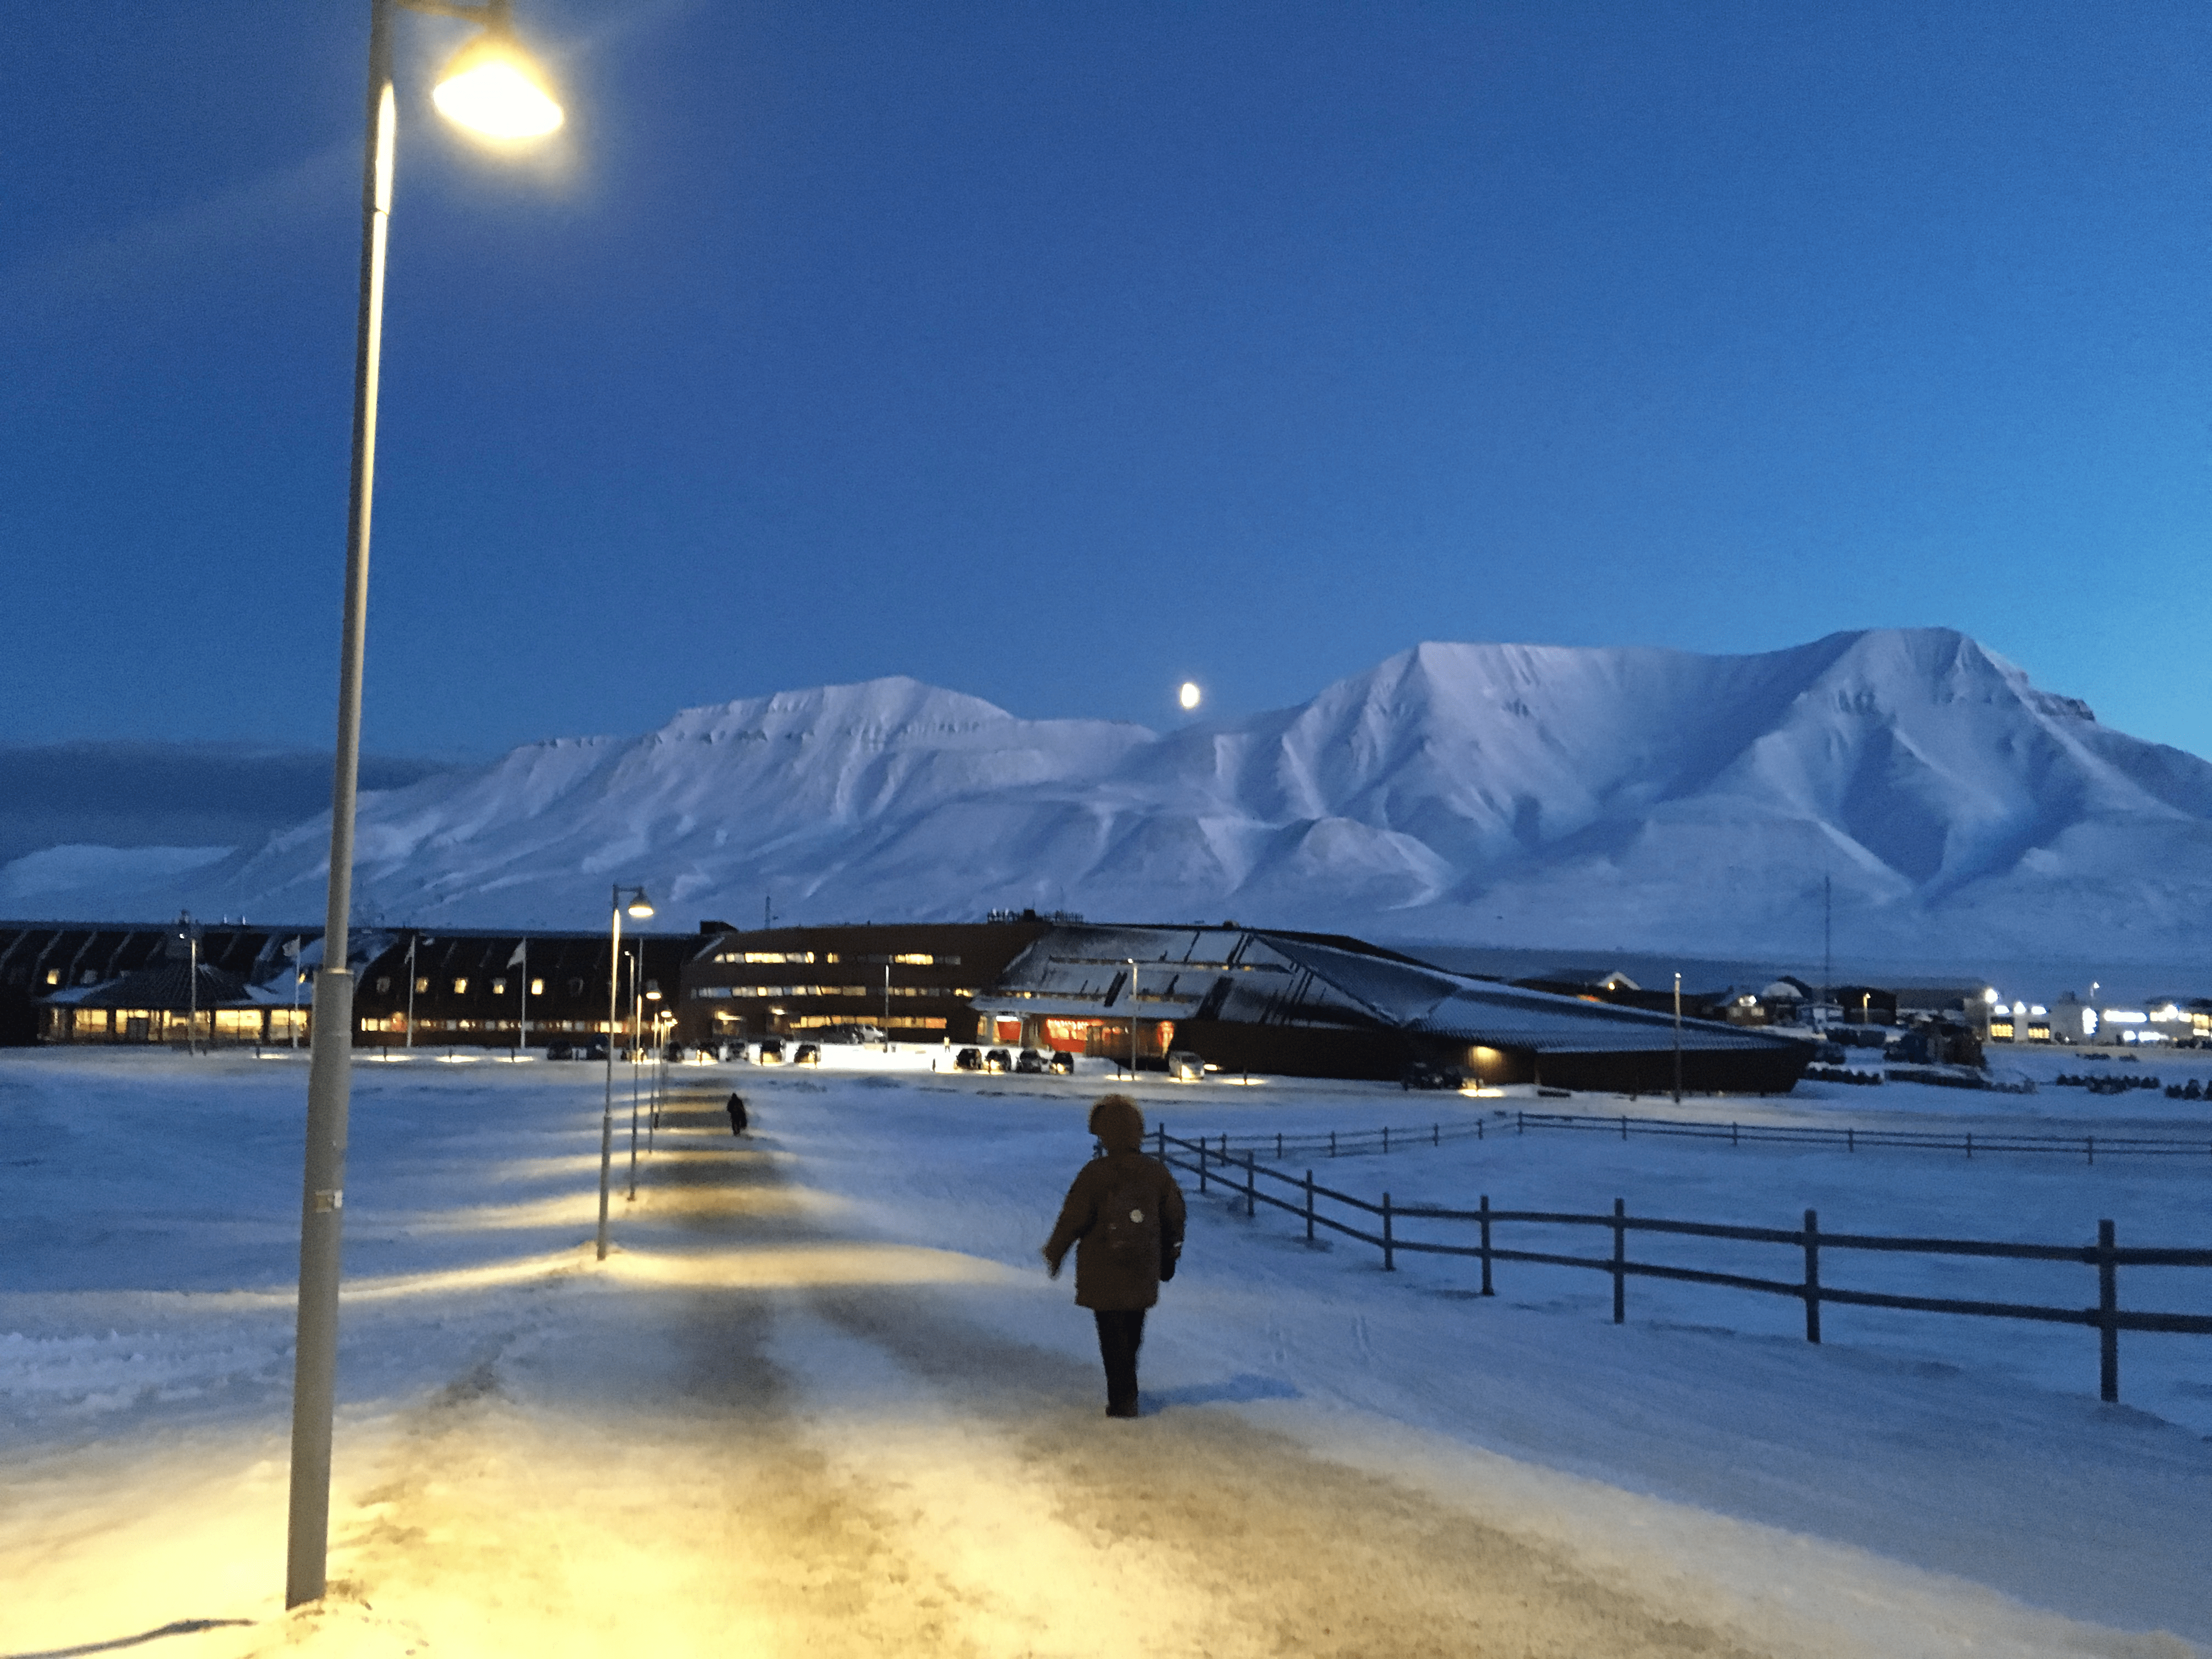 Student walking on dimly-lit path in snow with snowy mountains in background